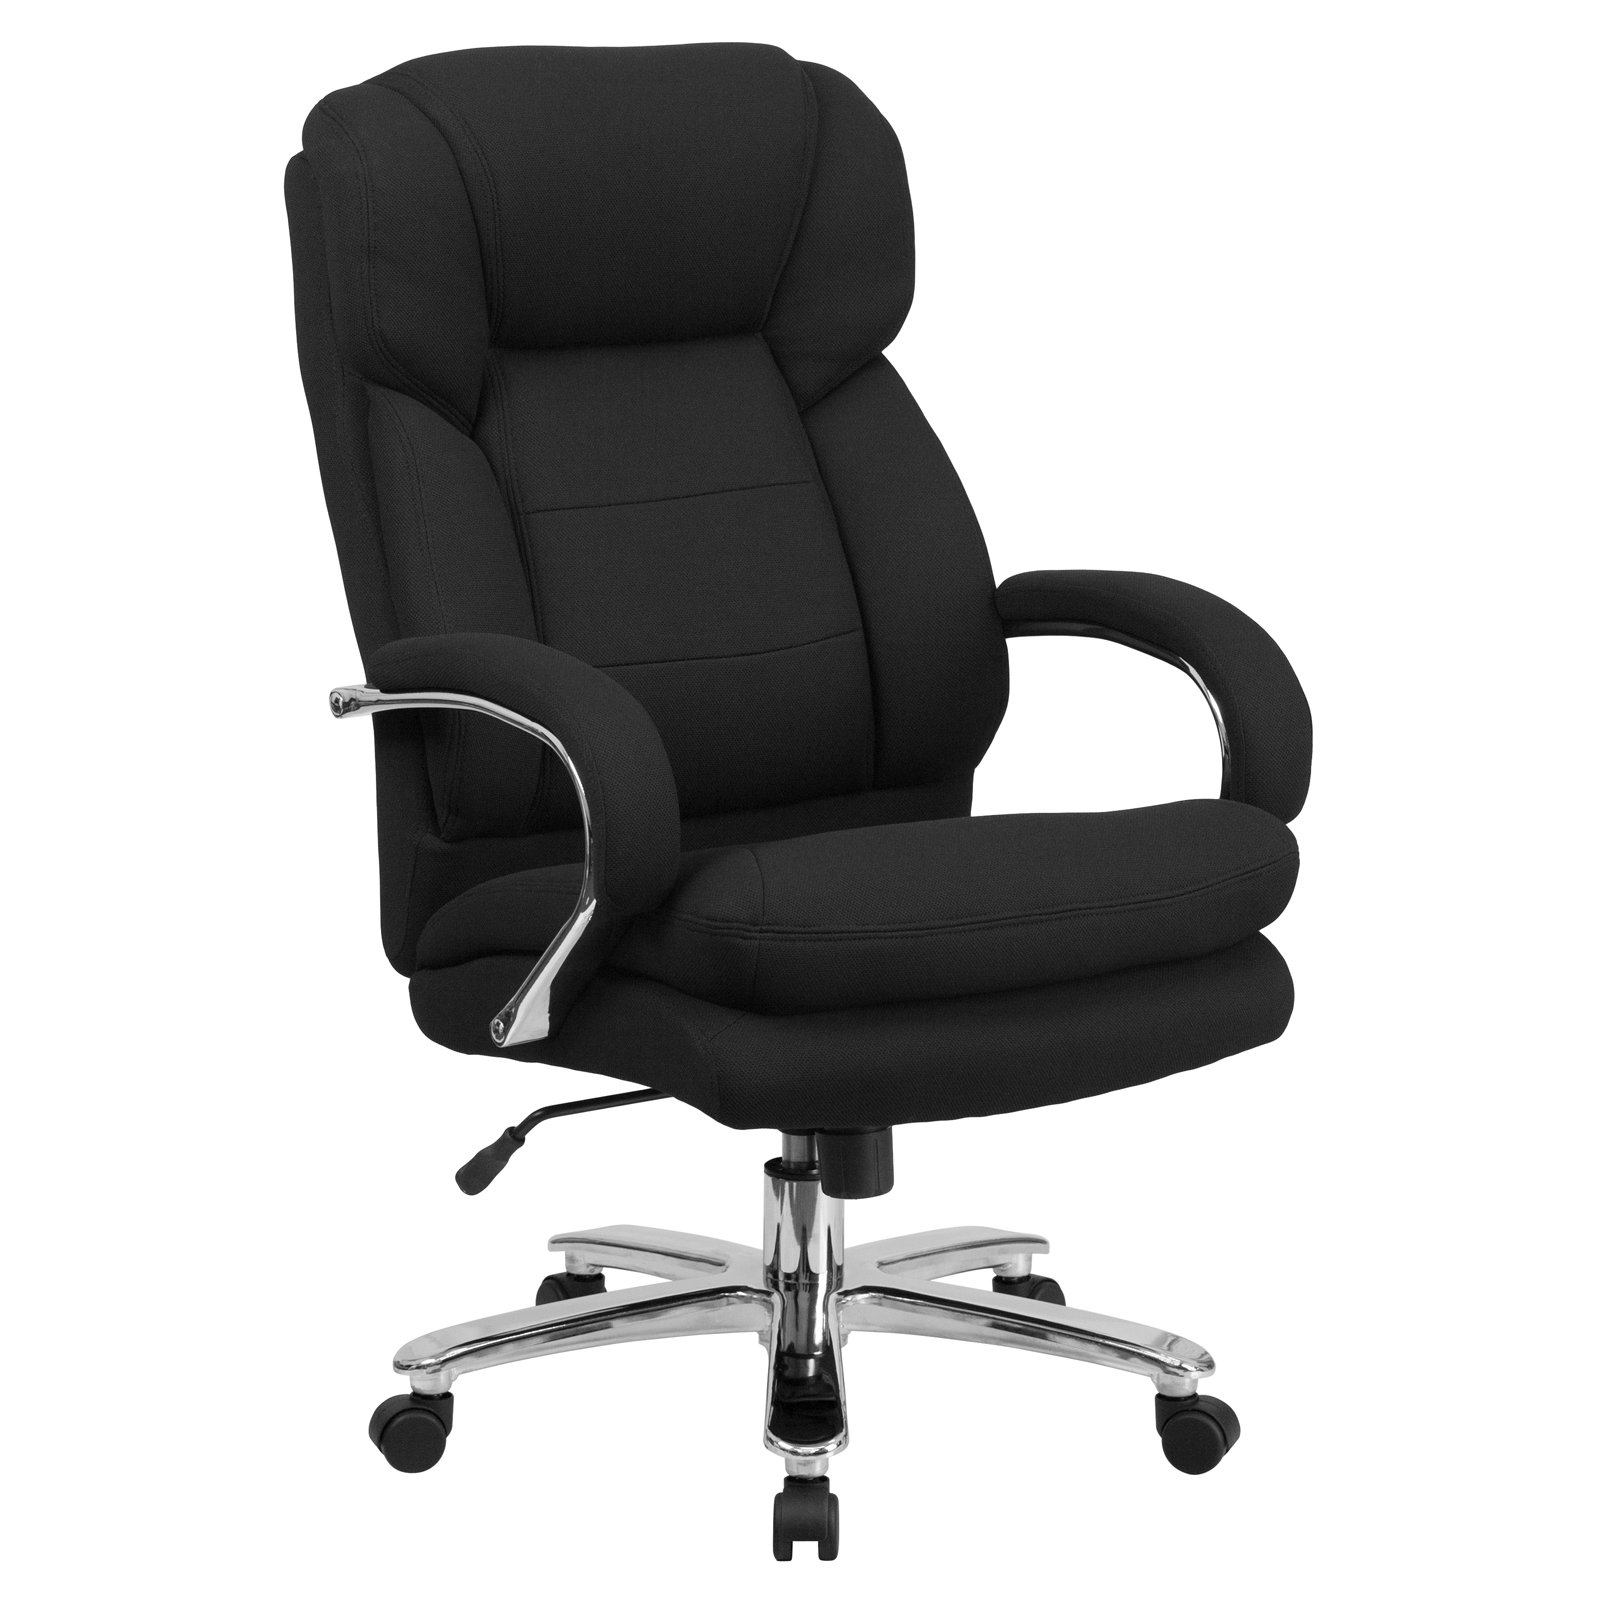 Flash Furniture HERCULES Series 24/7 Intensive Use, Multi-Shift, Big & Tall 500-Pound Capacity Black Fabric Executive Swivel Office Chair with Loop Arms